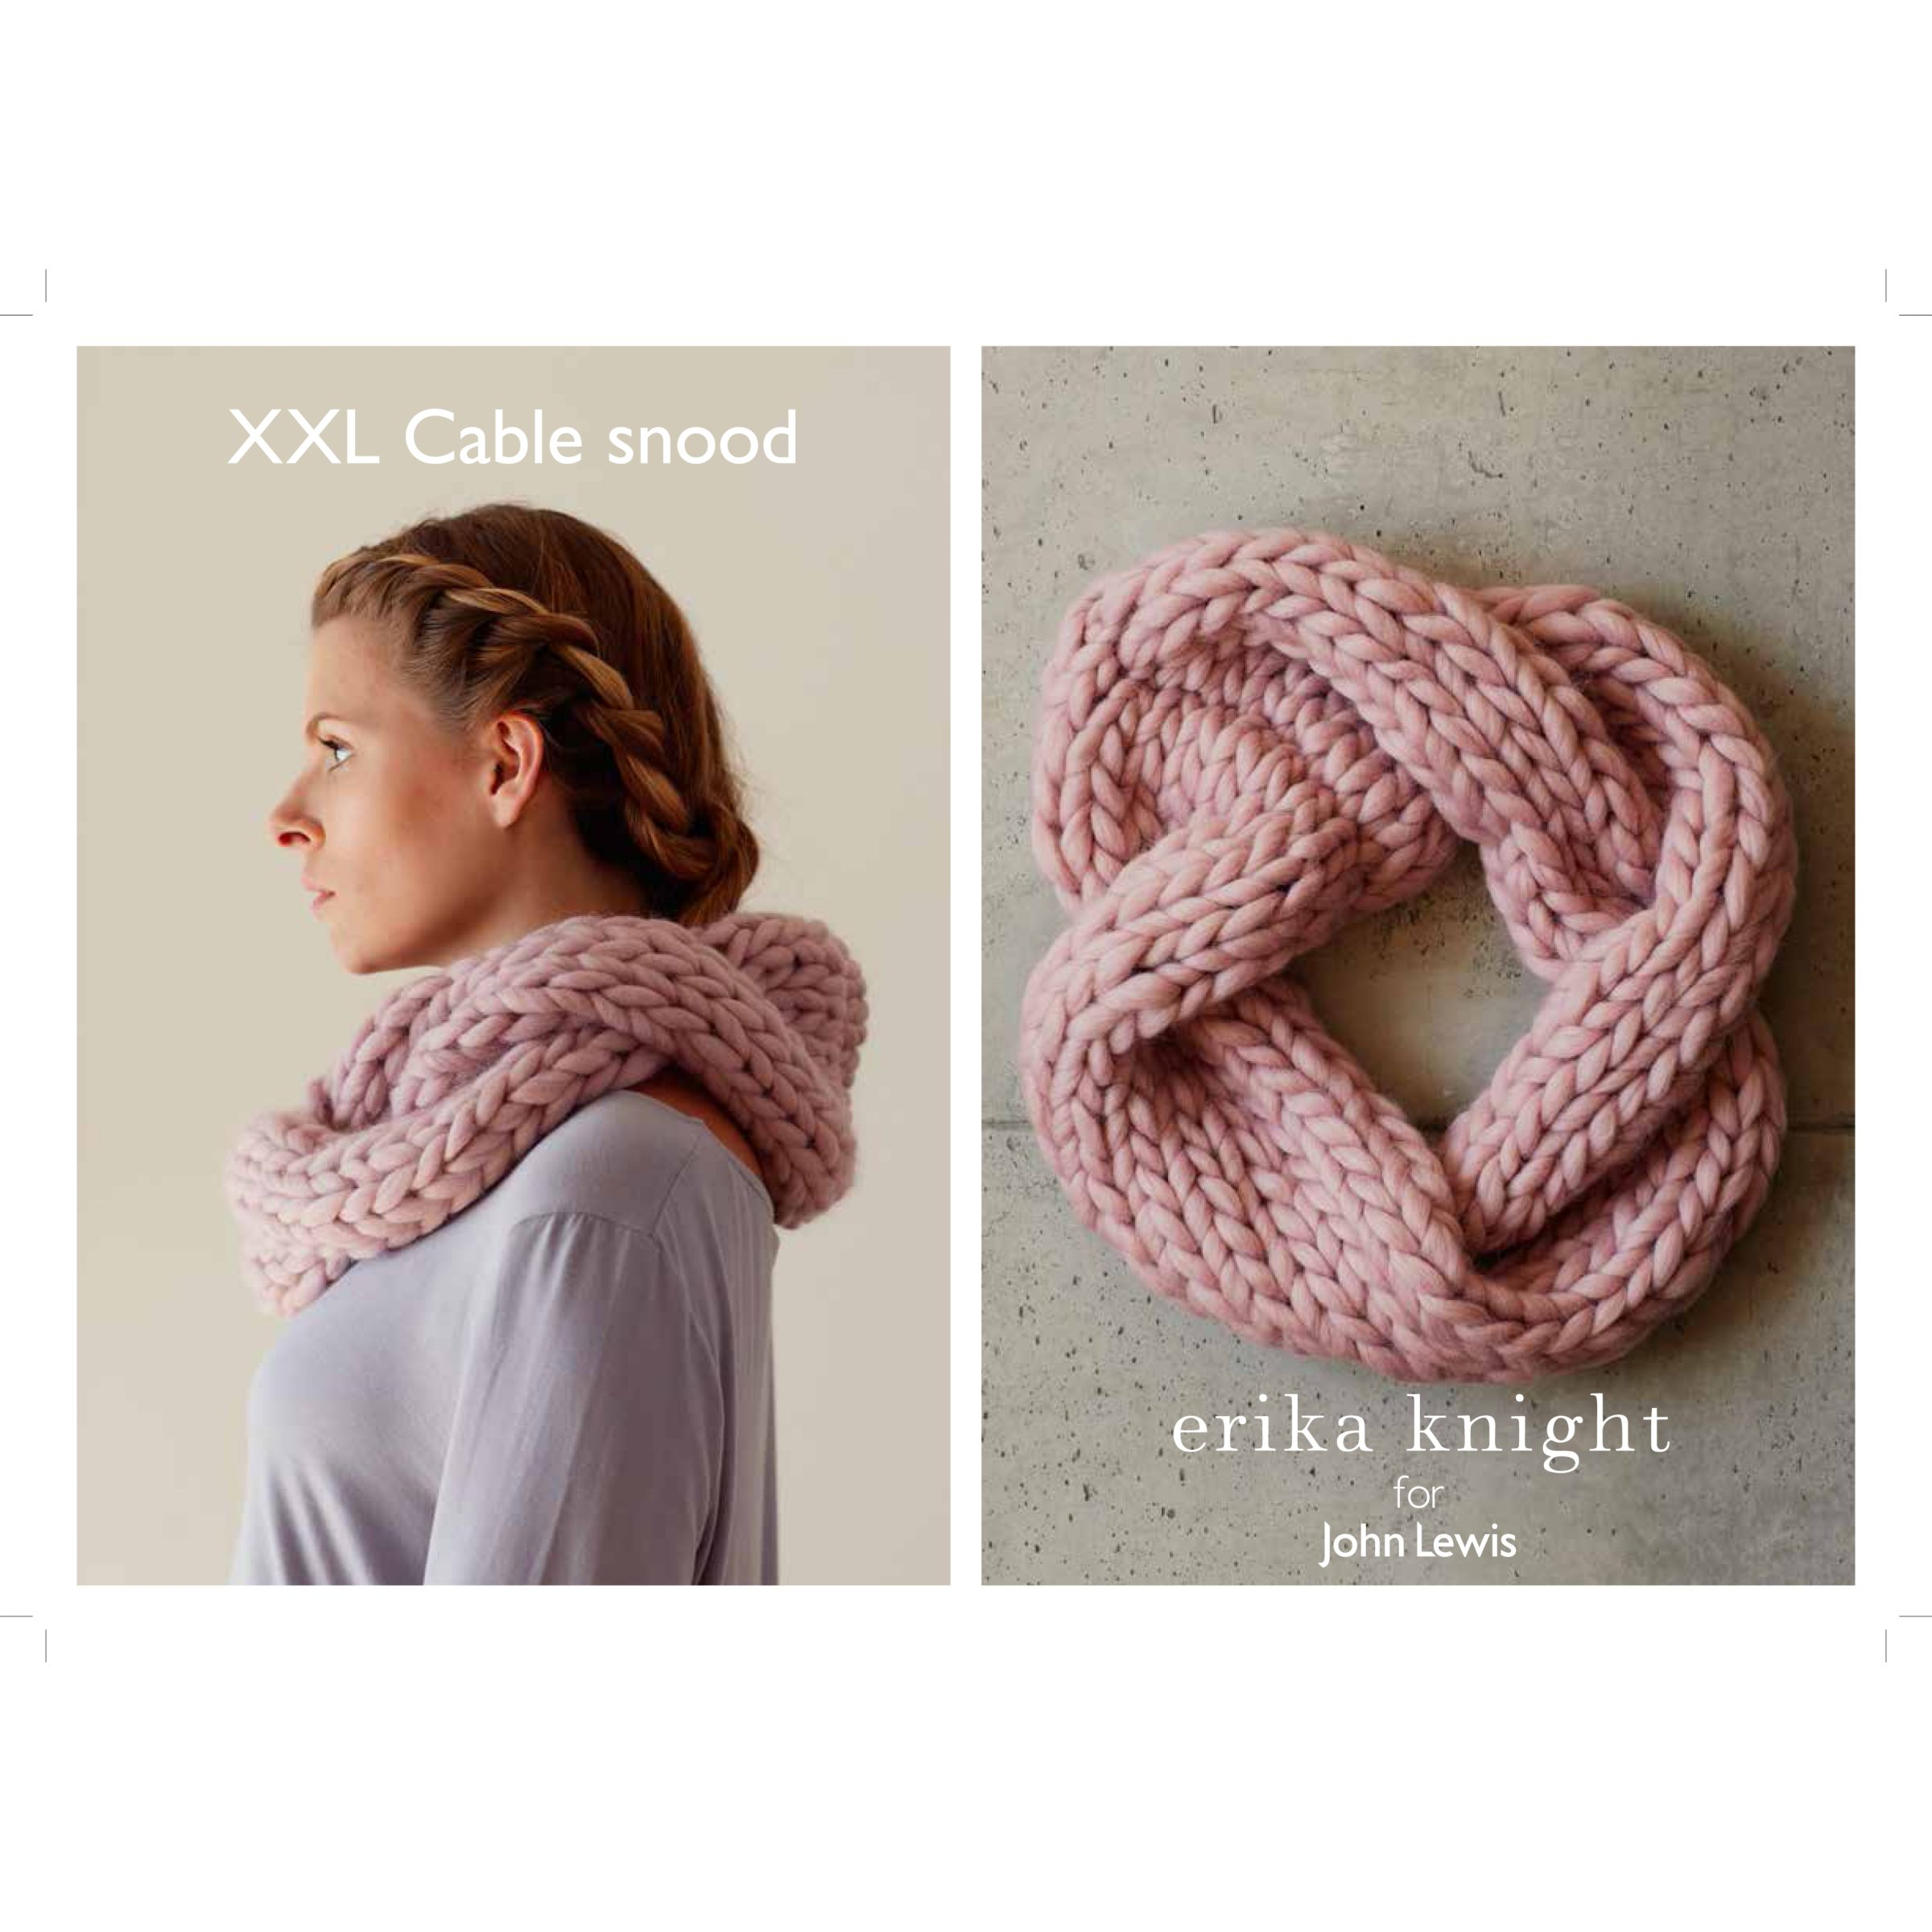 Knitting Pattern John Lewis : Buy Erika Knight for John Lewis XXL Cable Snood Knitting Pattern John Lewis